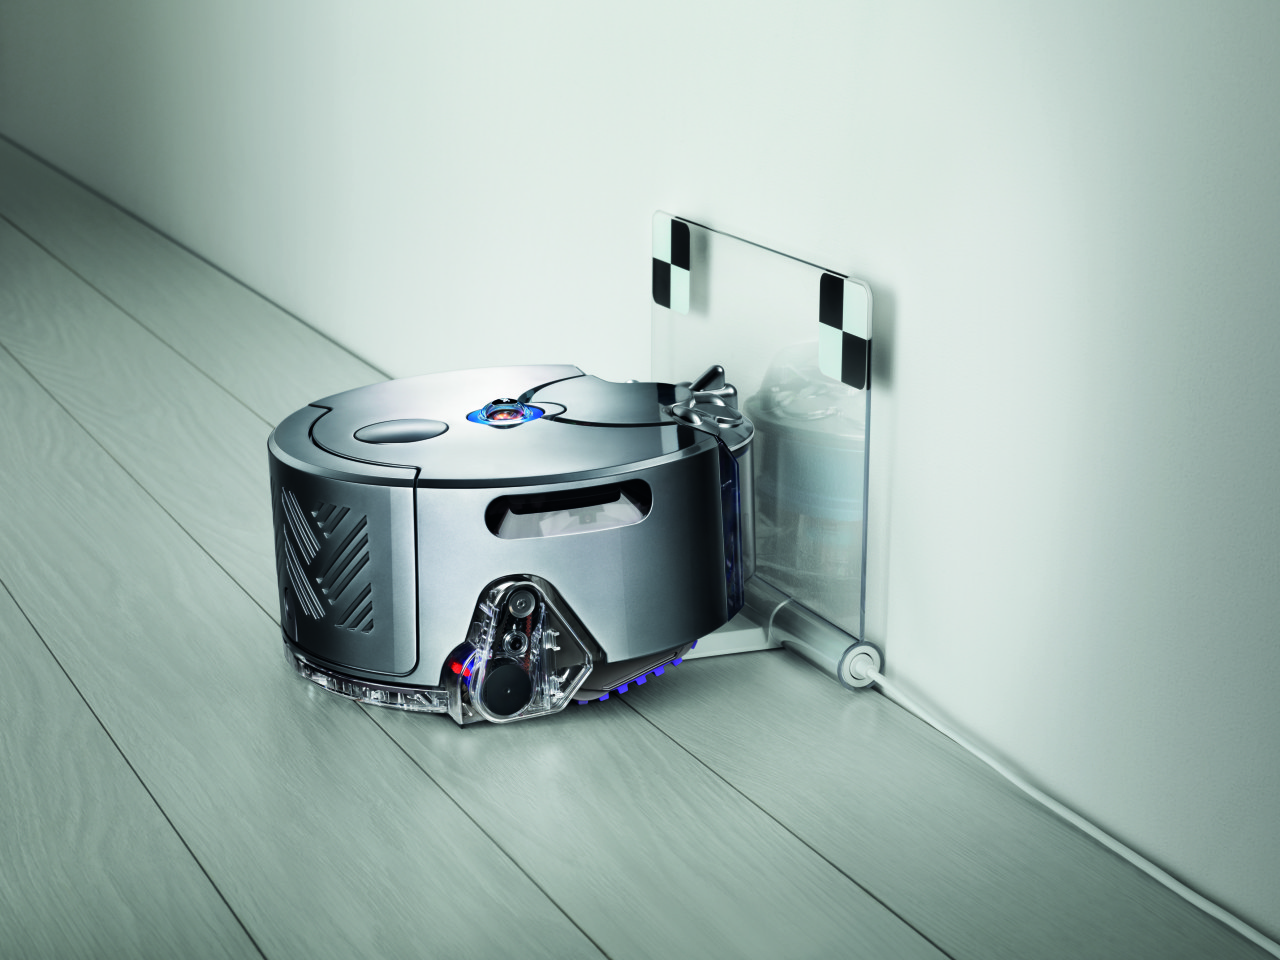 dyson-360-eye-robot-aspirateur-charge